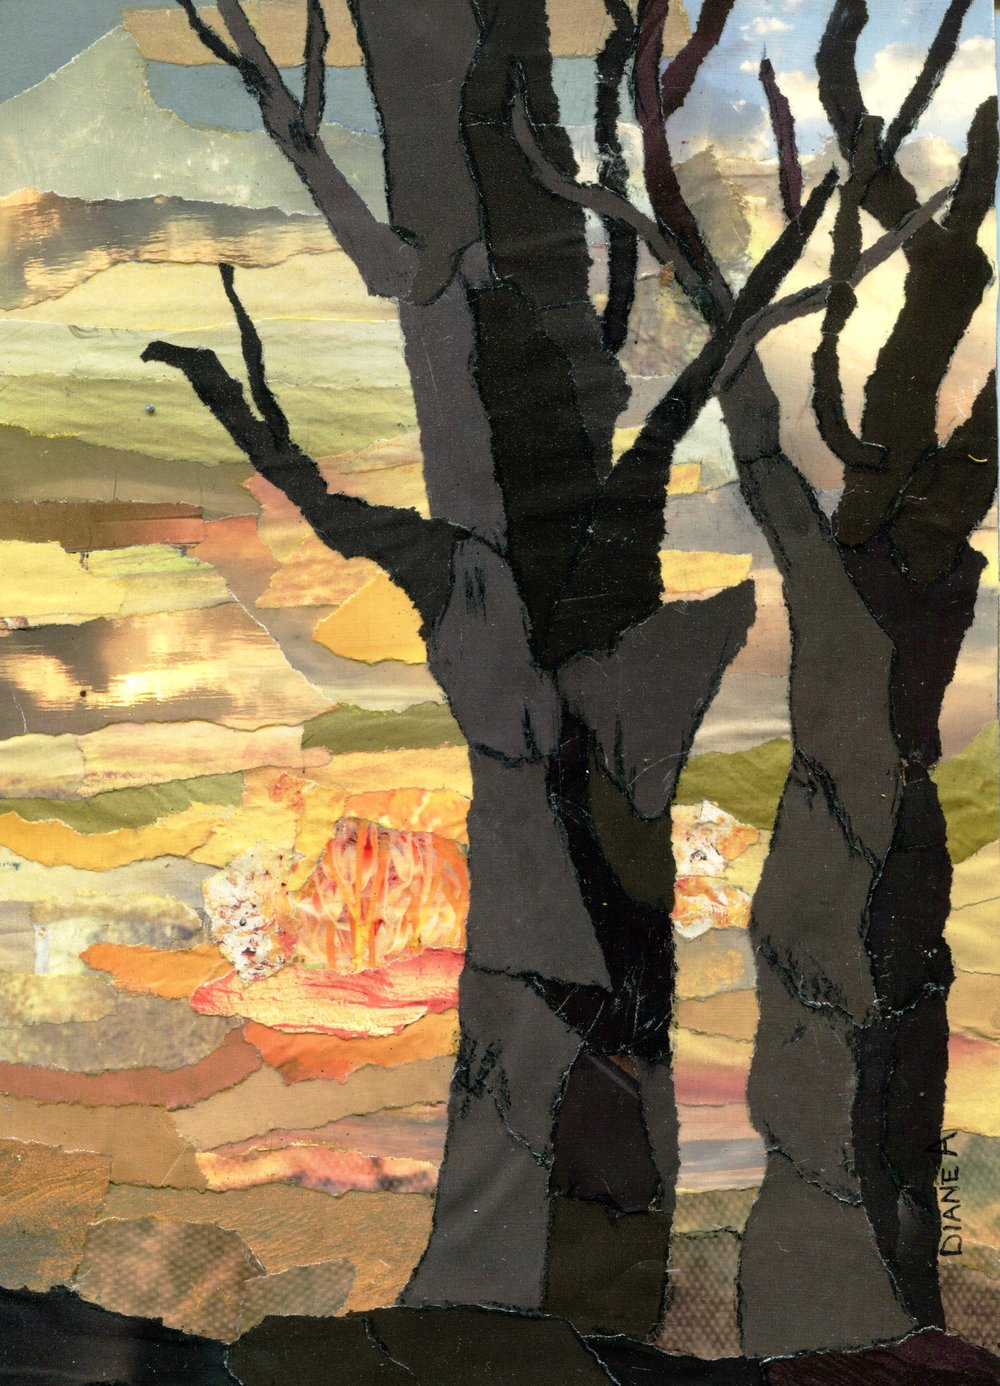 40A DIANE ALDWORTH, WINTER SUNSET, PAPER COLLAGE ON BOARD